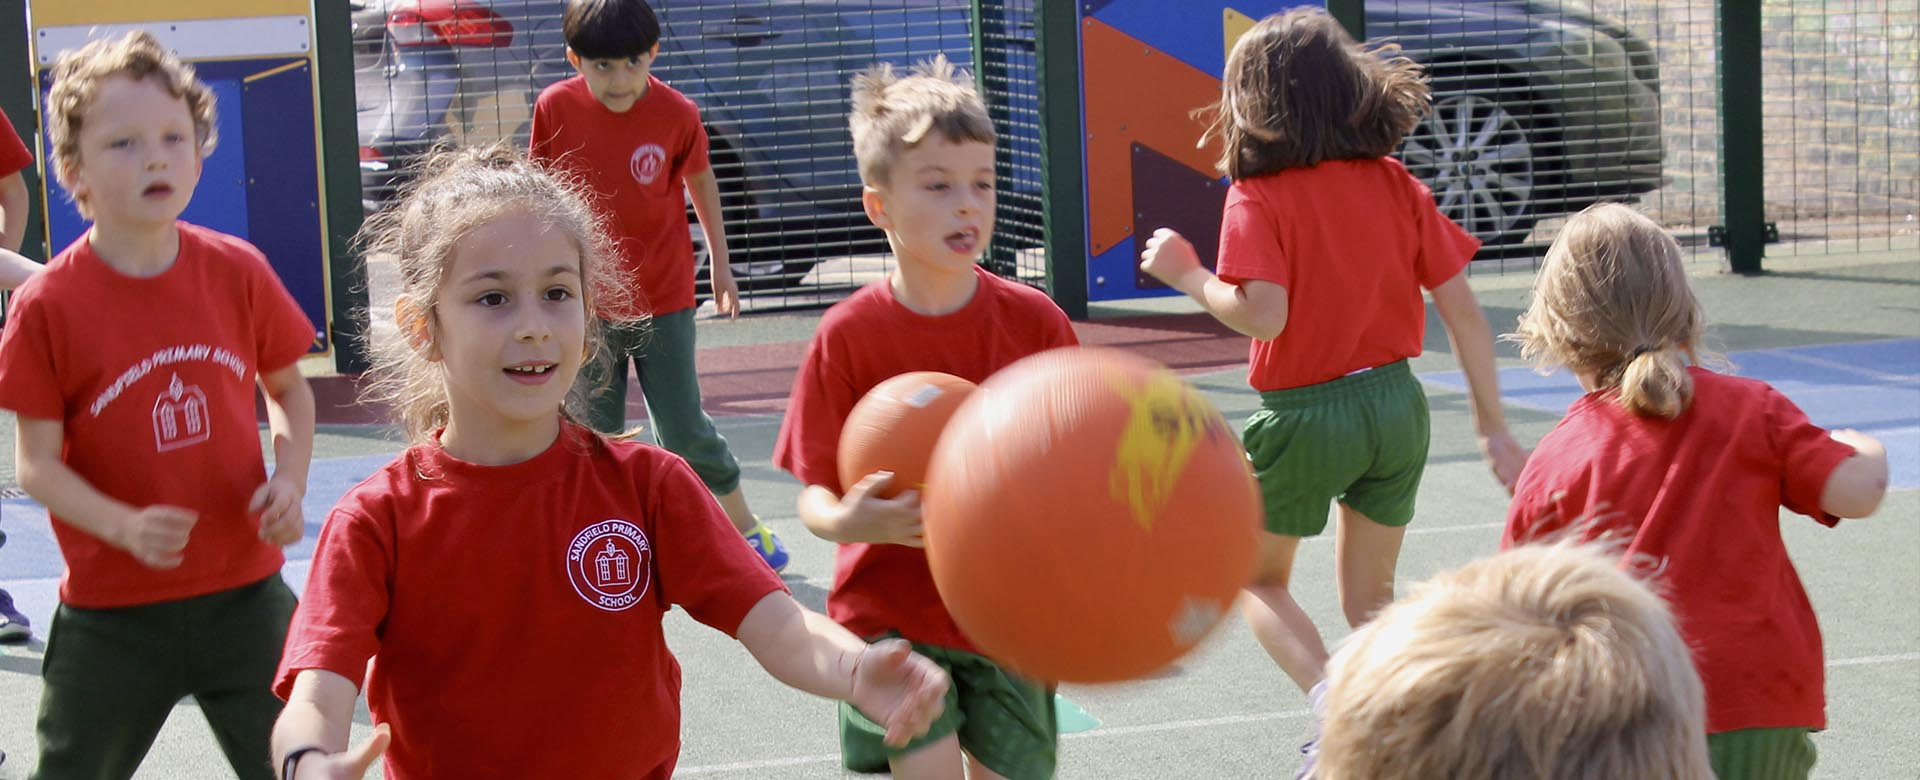 Sports at Sandfield Primary School